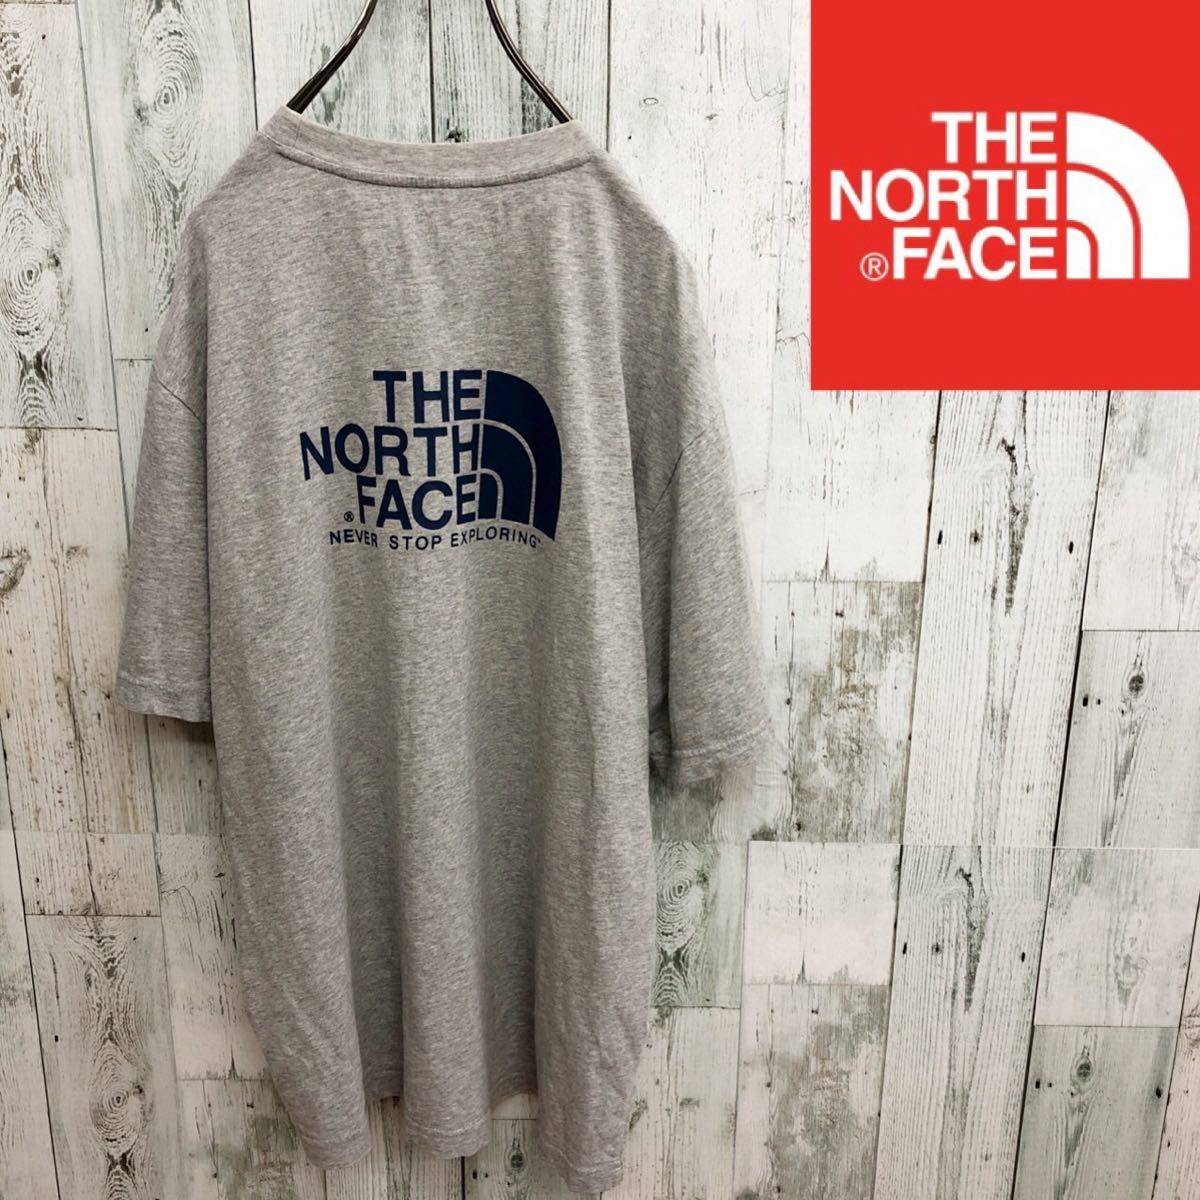 THE NORTH FACE ロゴTシャツ